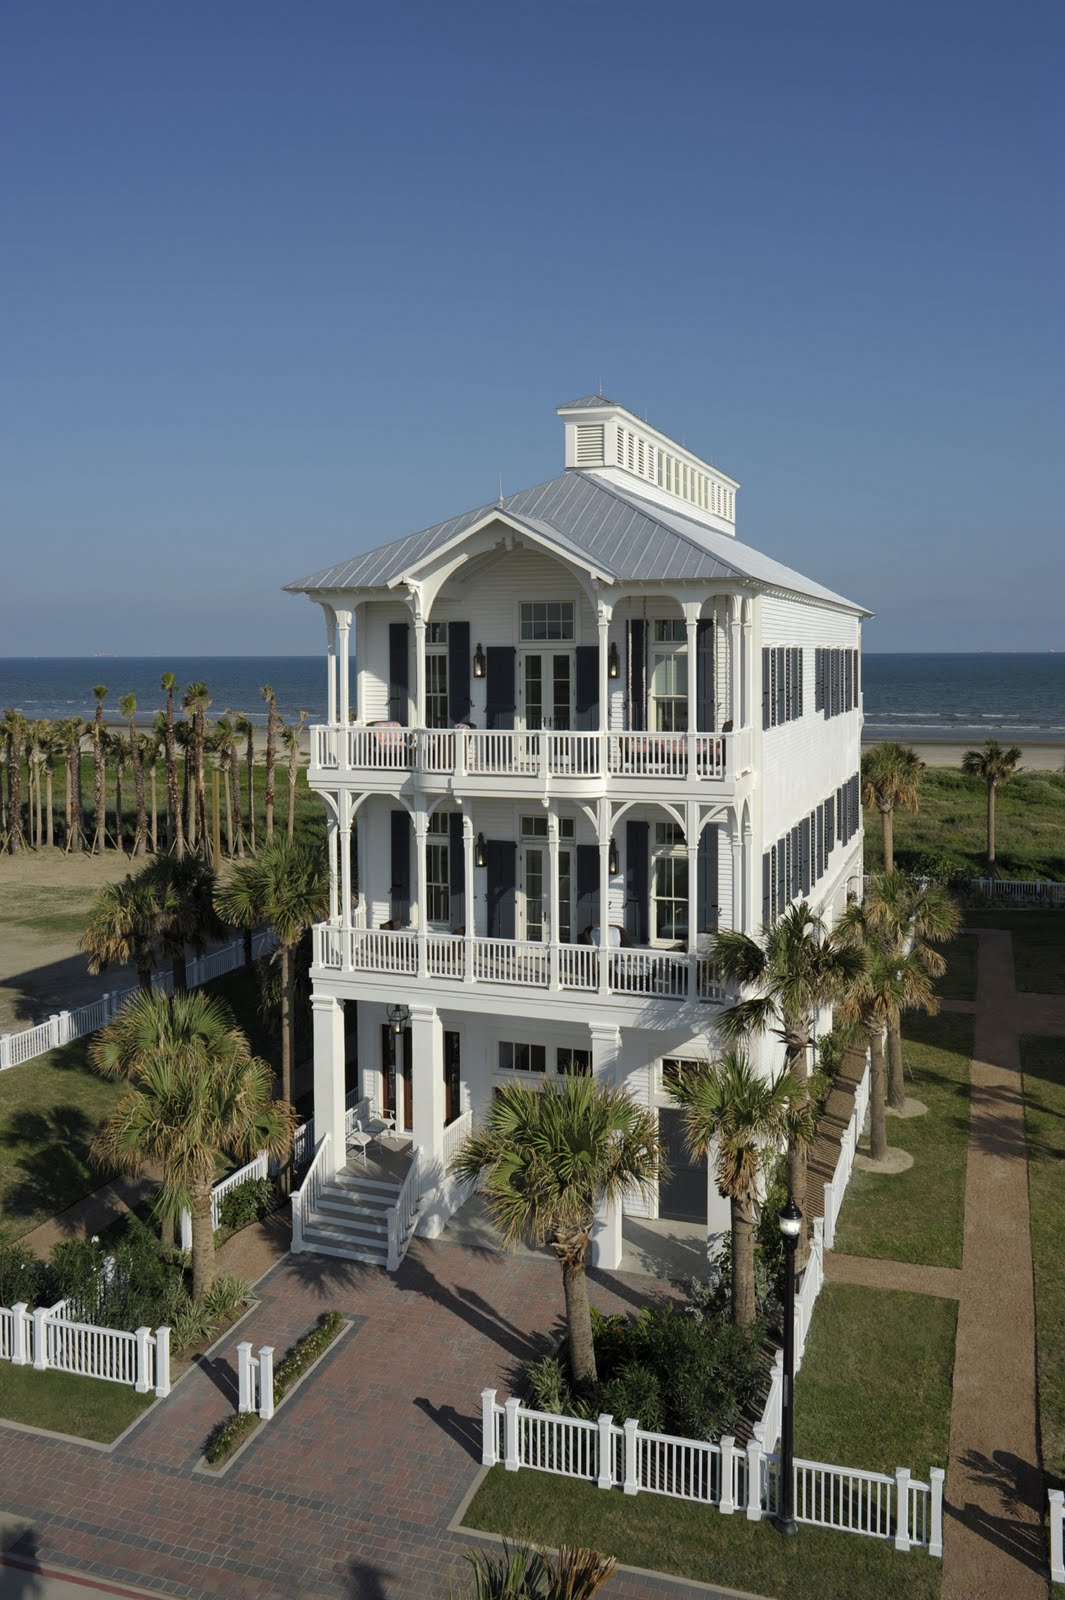 Texas style and substance galveston beachtown for Coastal home builders texas